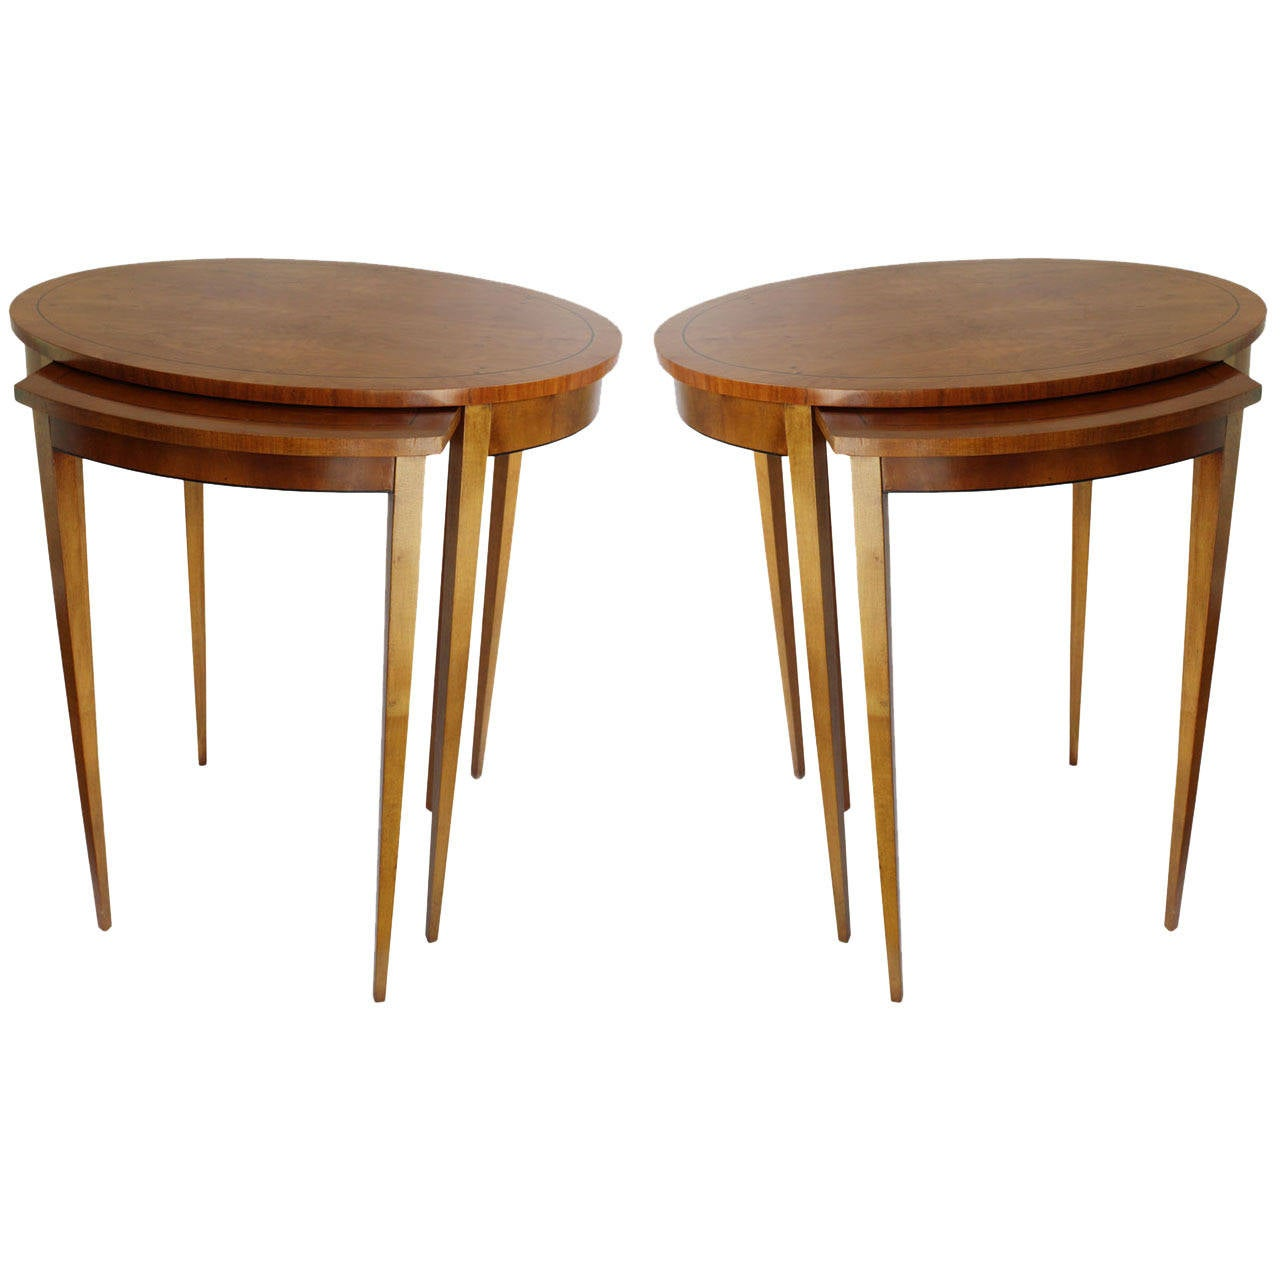 Pair Of Baker Nesting Side Tables At 1stdibs. Full resolution‎  image, nominally Width 1280 Height 1280 pixels, image with #AC5410.